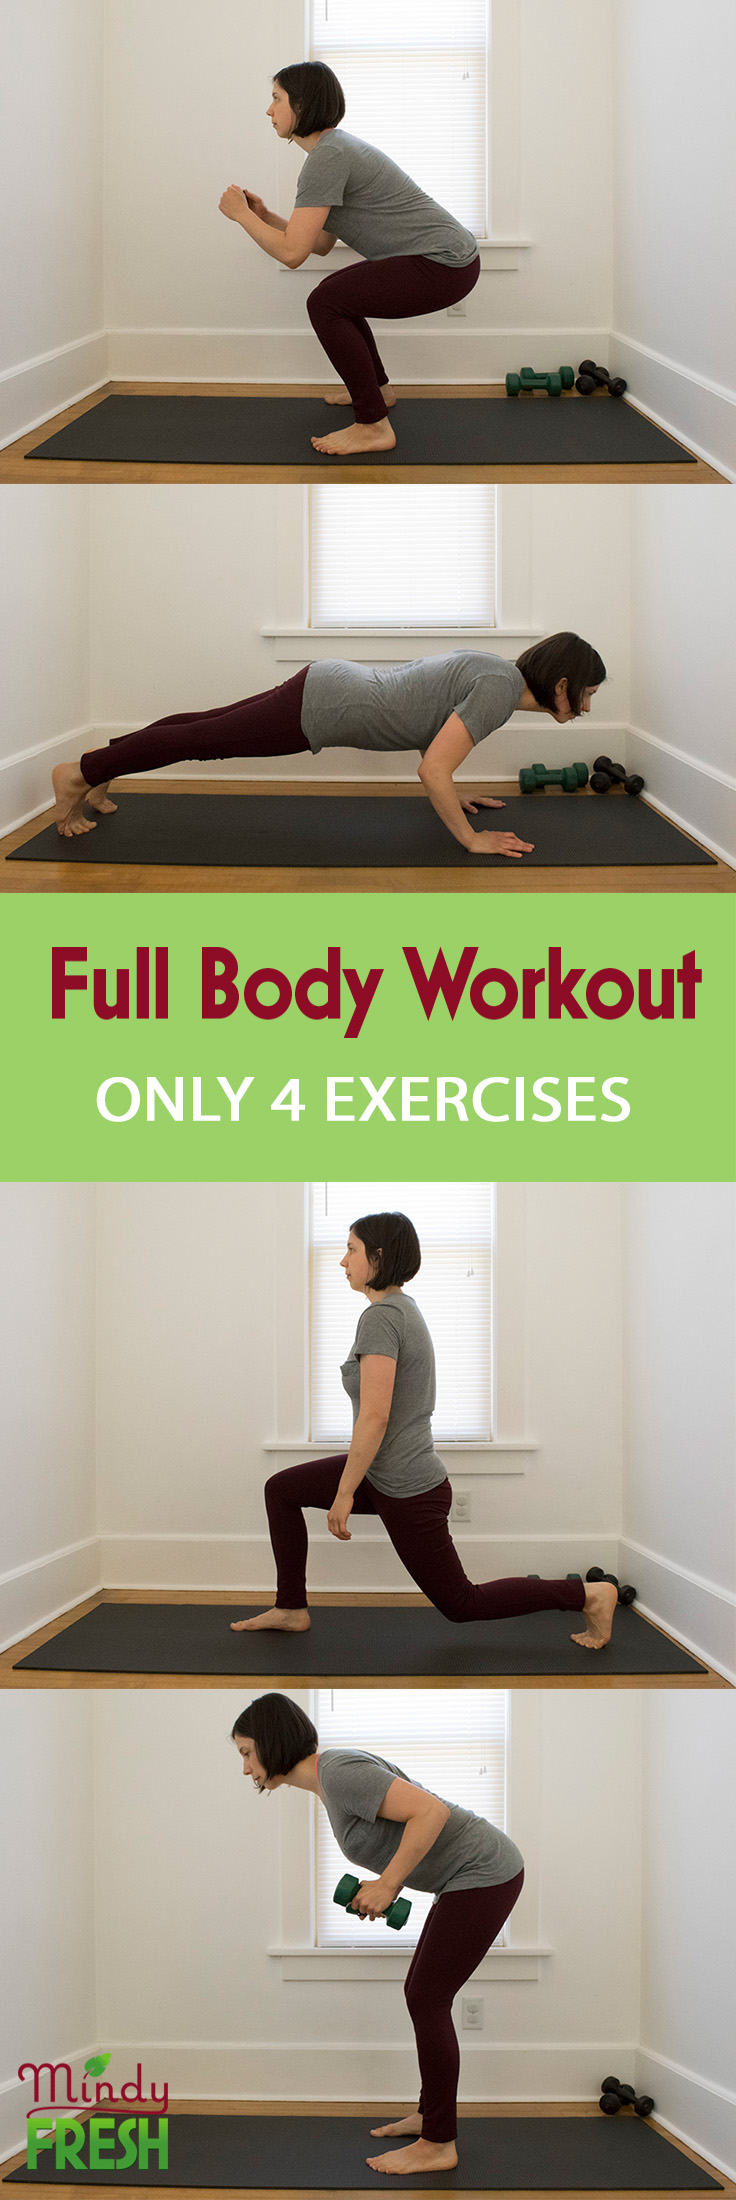 4 exercises to a full body workout complete with squat, push up, lunge, and row exercises